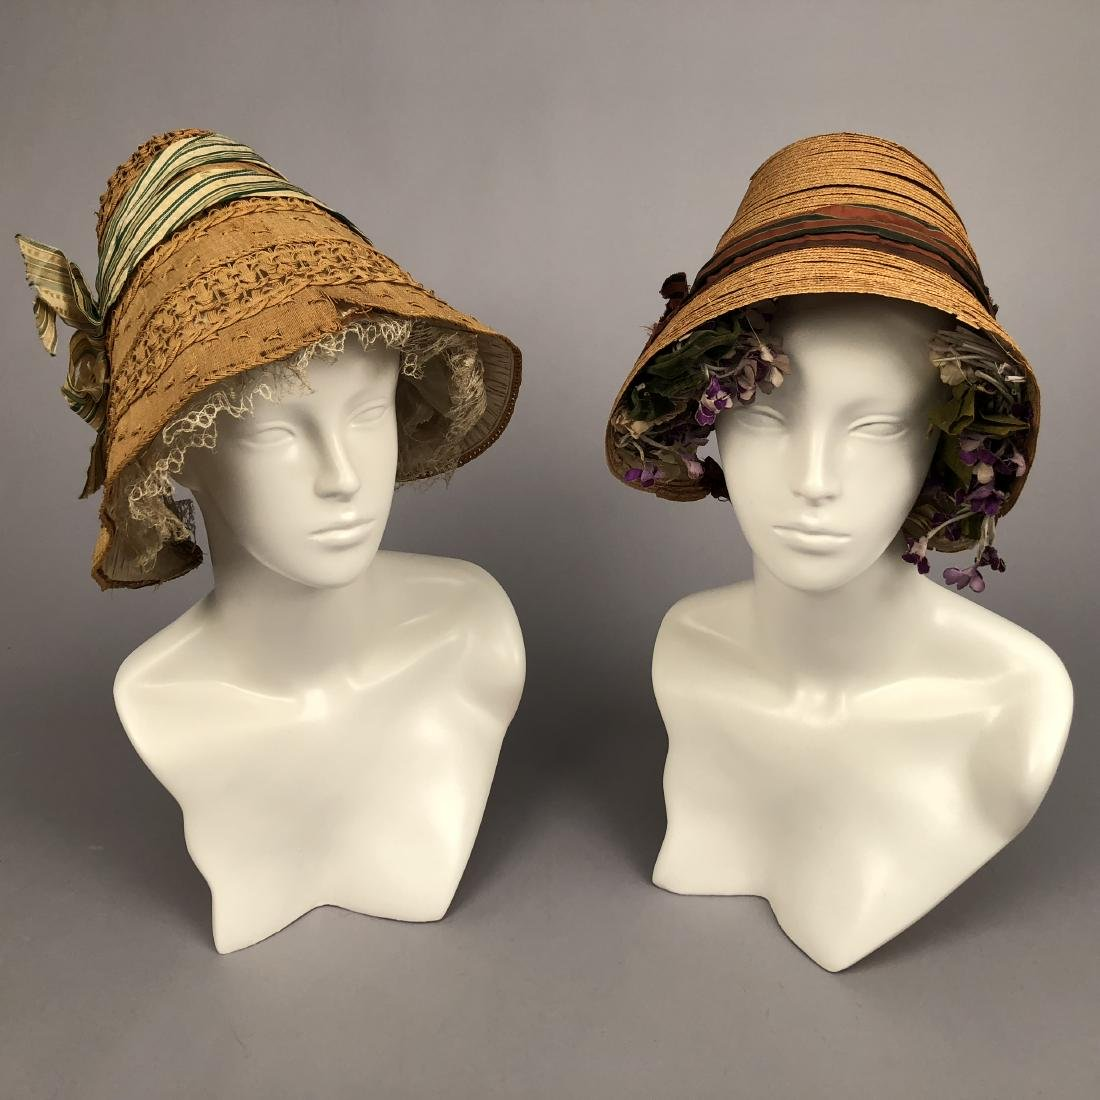 TWO STRAW BONNETS with STRIPED RIBBON, 1840 - 1855 - 2